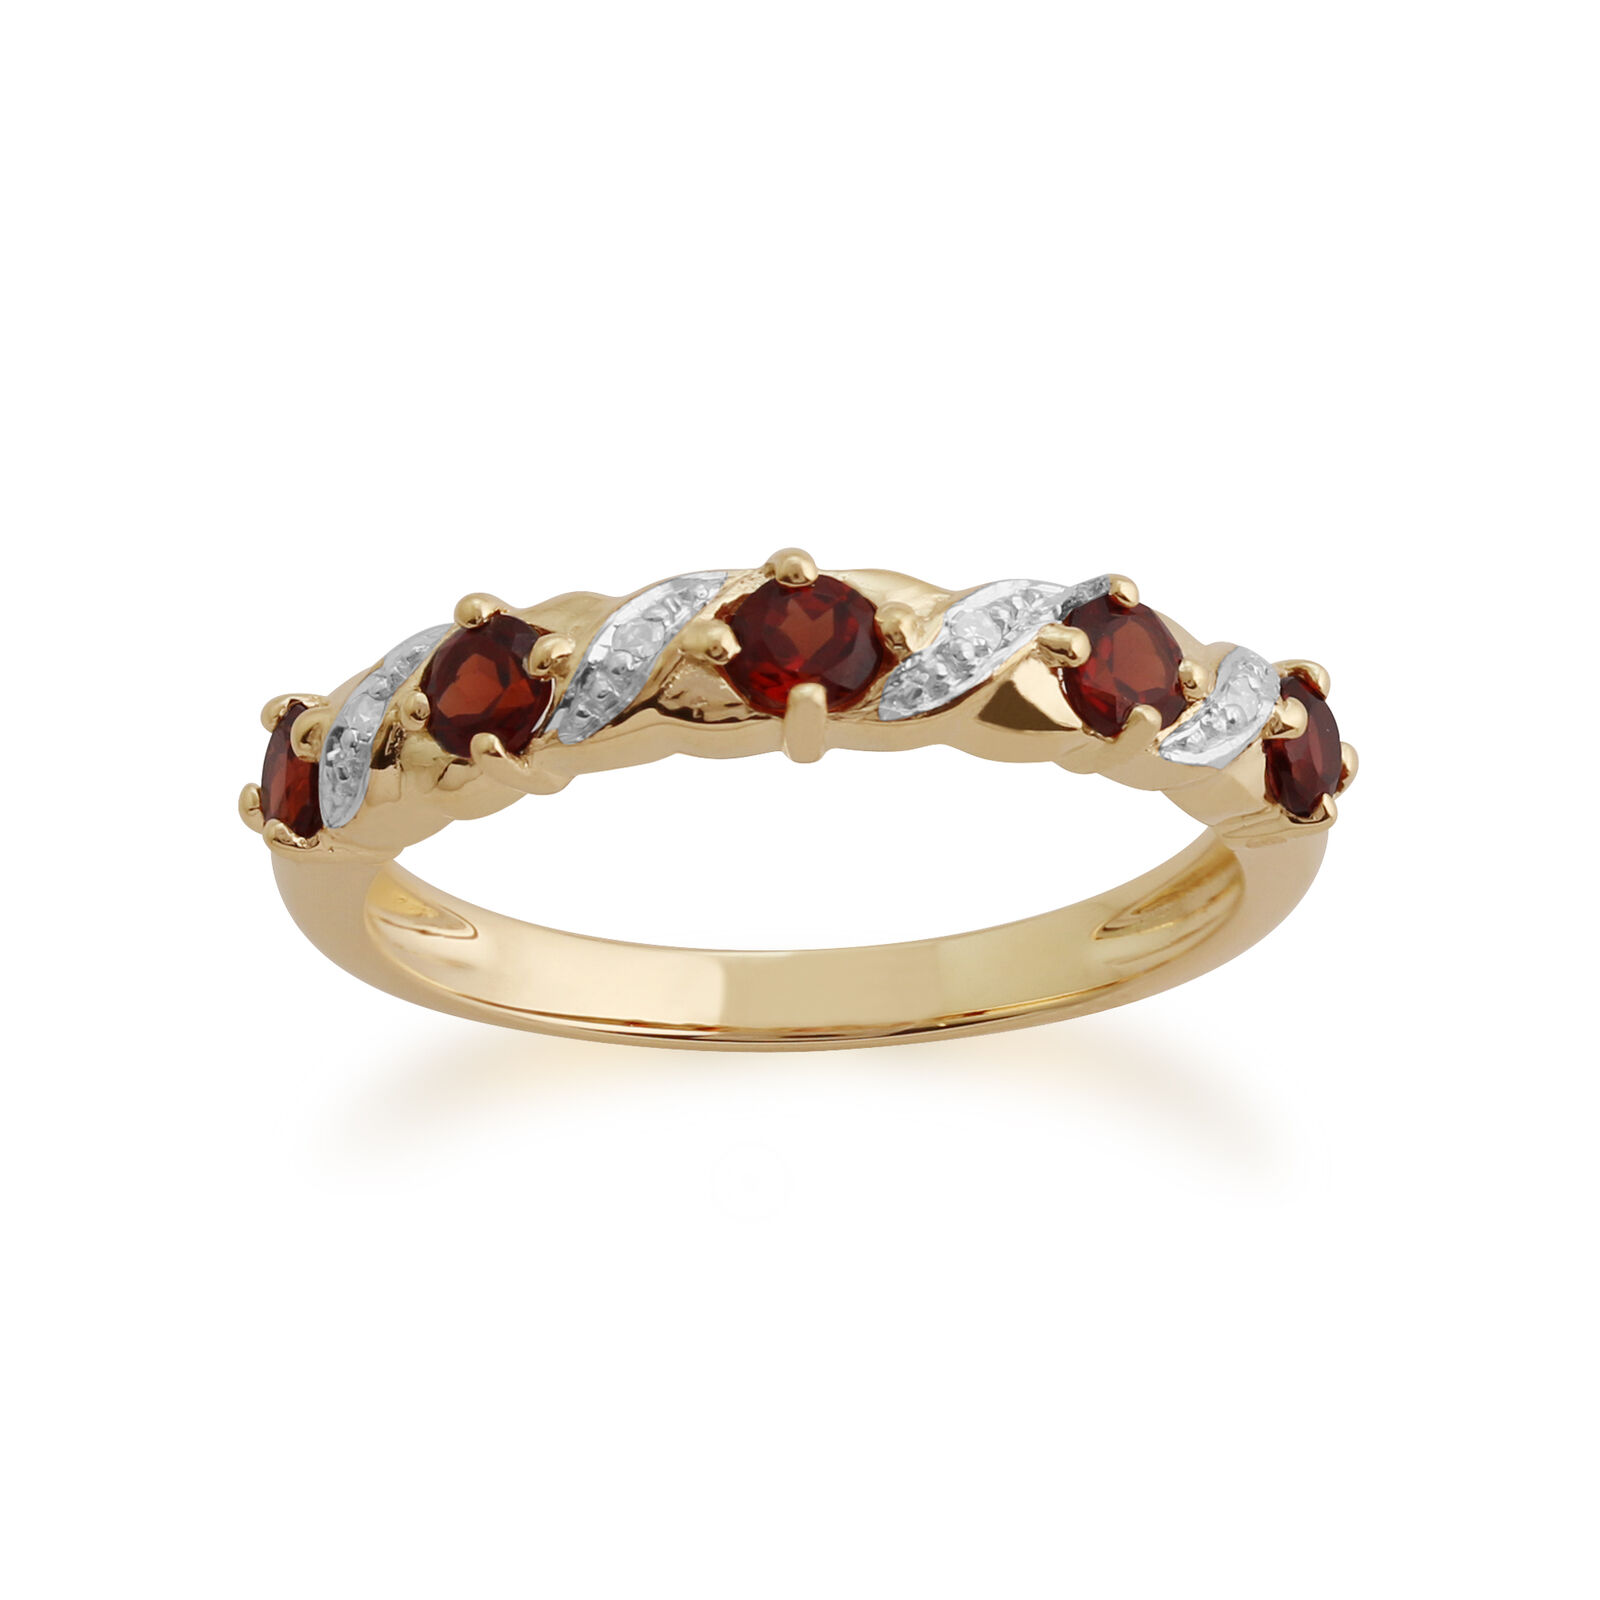 Gemondo 9ct Yellow gold 0.56ct Garnet & Diamond Half Eternity Ring